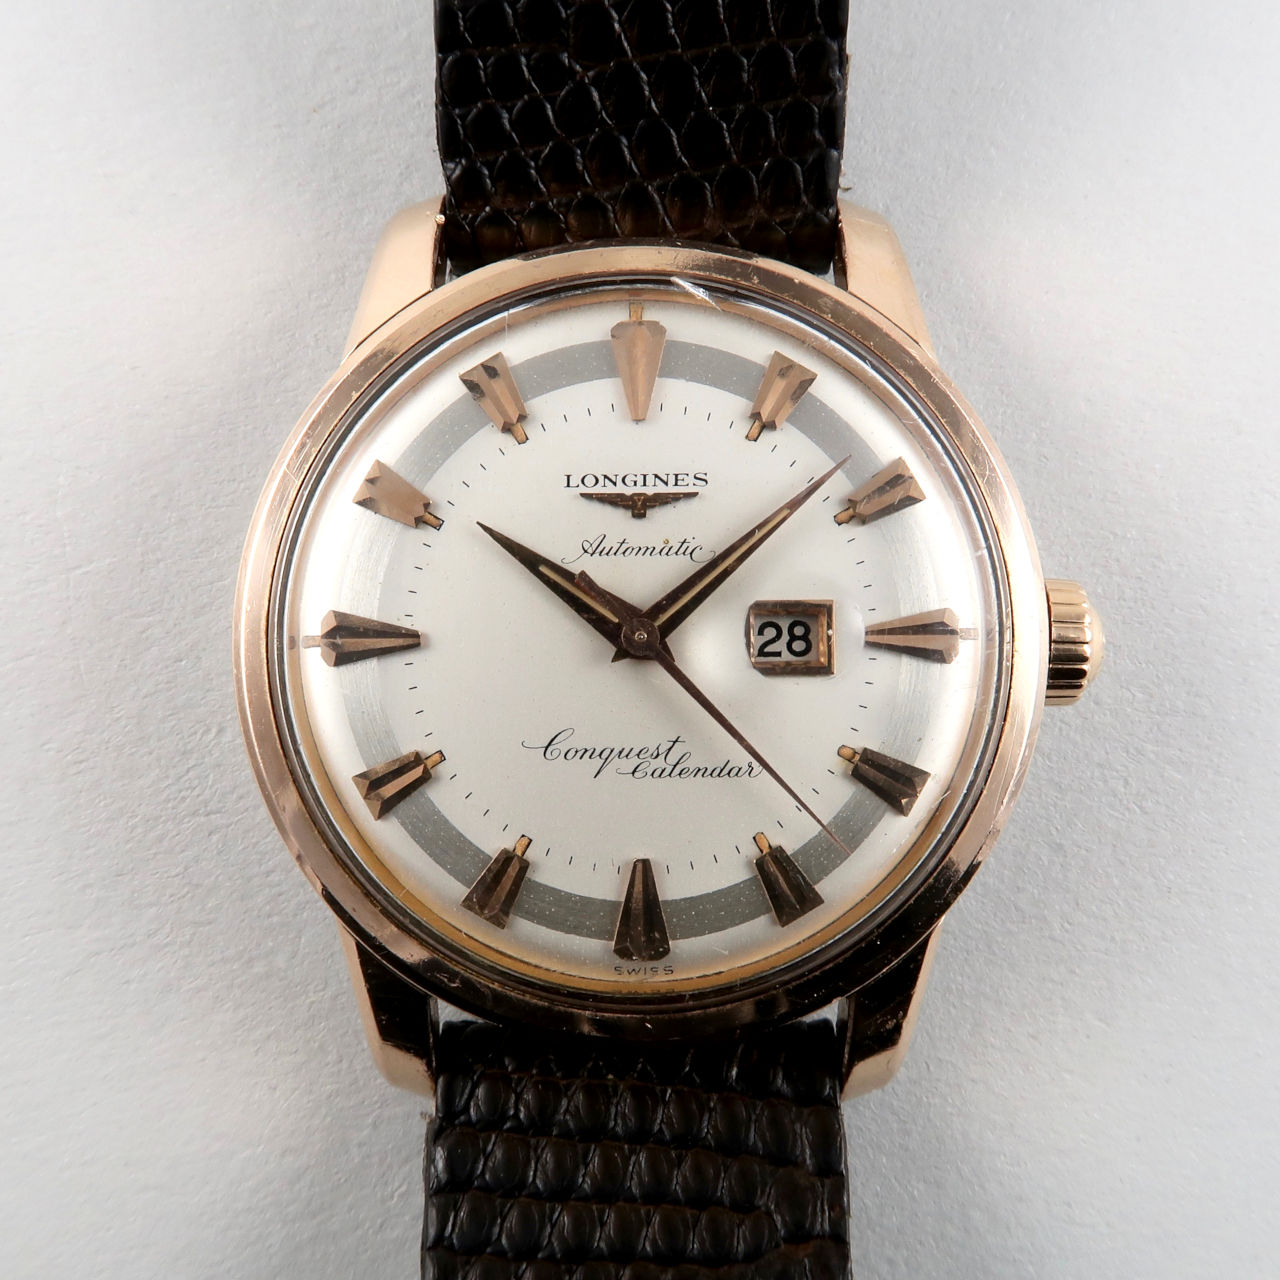 Longines Conquest Calendar Ref. 9007 -6 pink gold capped vintage wristwatch, circa 1957